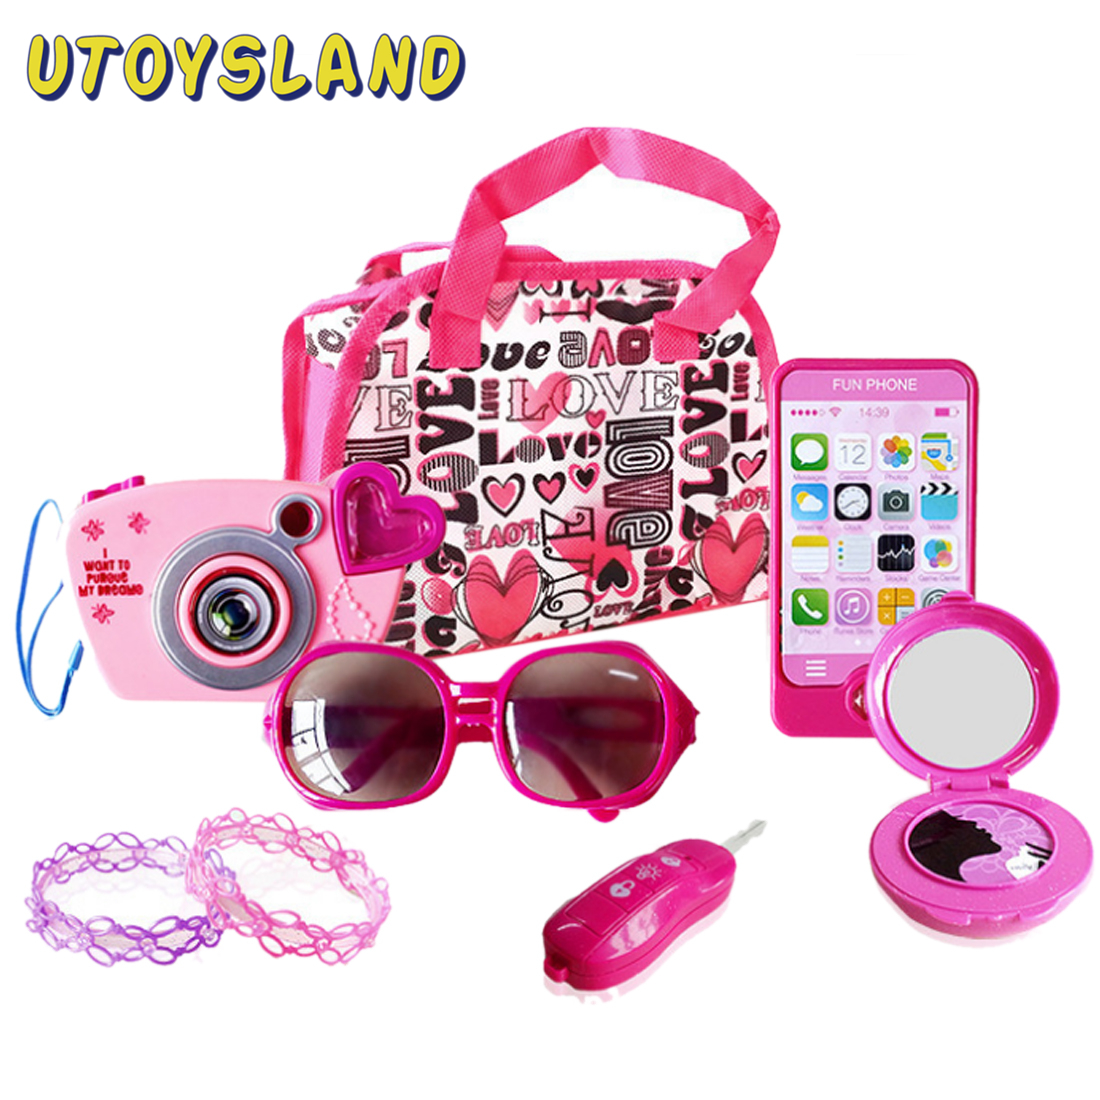 Kids Pretend Play Camera Ornament Kit Little <font><b>Girls</b></font> Camera Jewelry Decoration <font><b>Toy</b></font> Set Simulation <font><b>House</b></font> <font><b>Toy</b></font> Role Play Beauty Set image